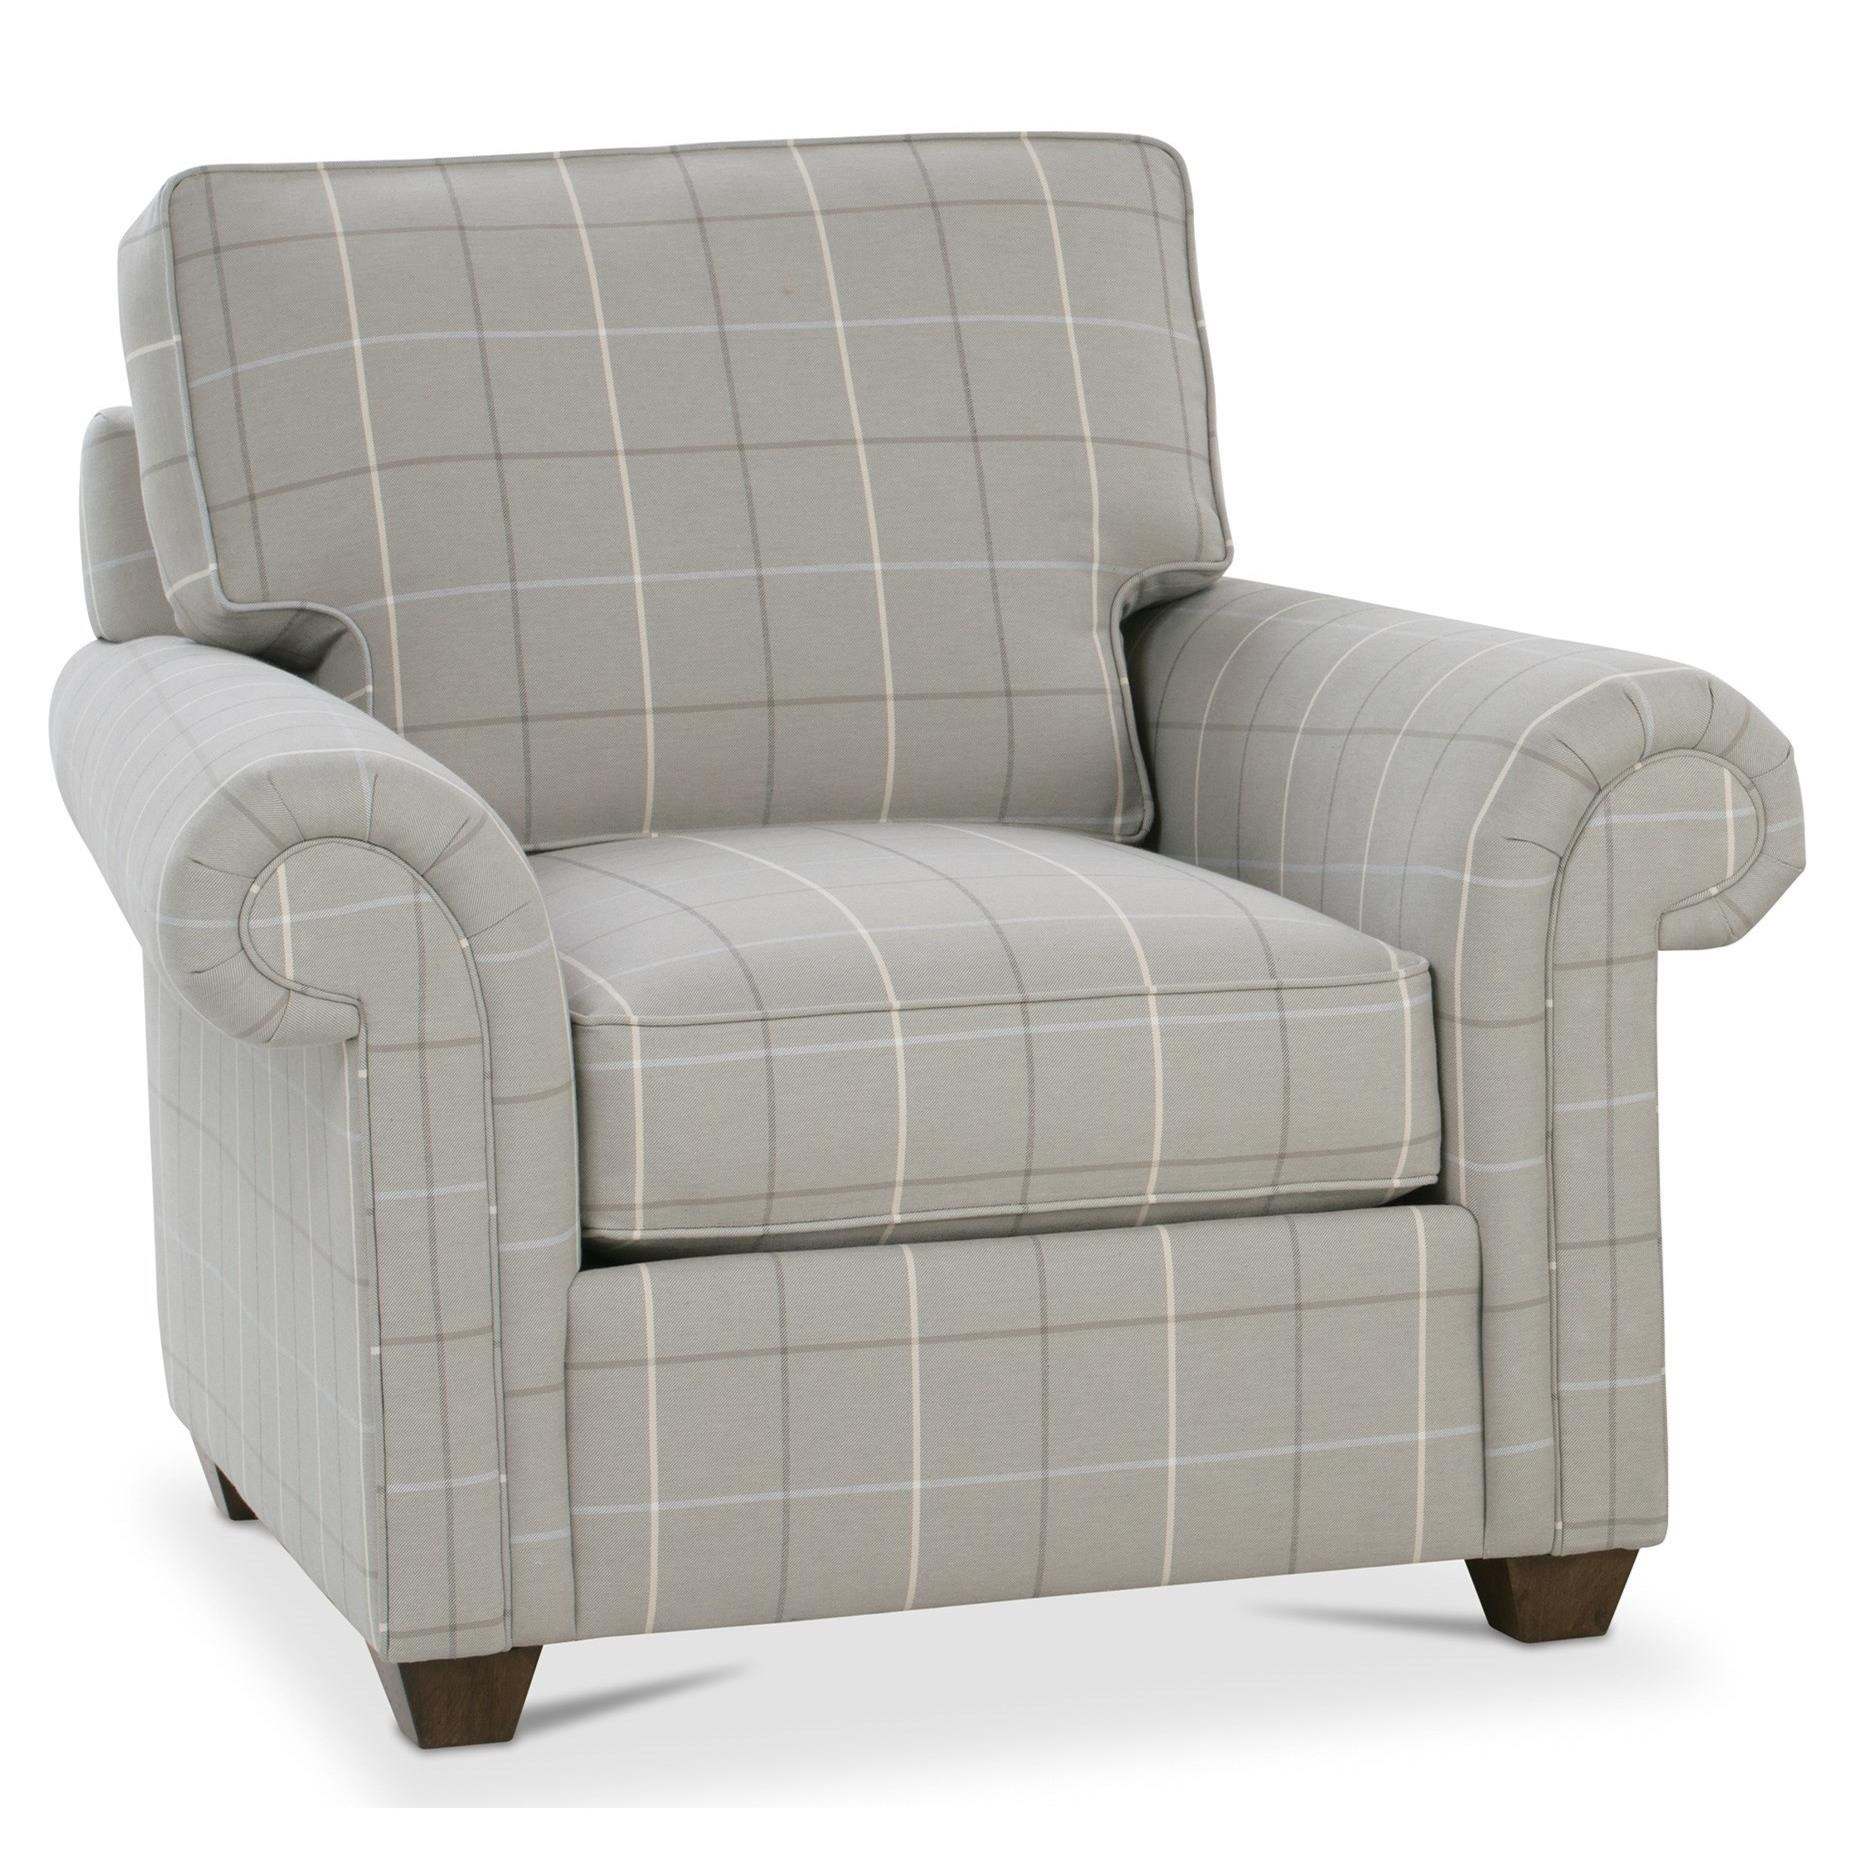 Rowe Morgan Traditional Stationary Chair With Rolled Arms